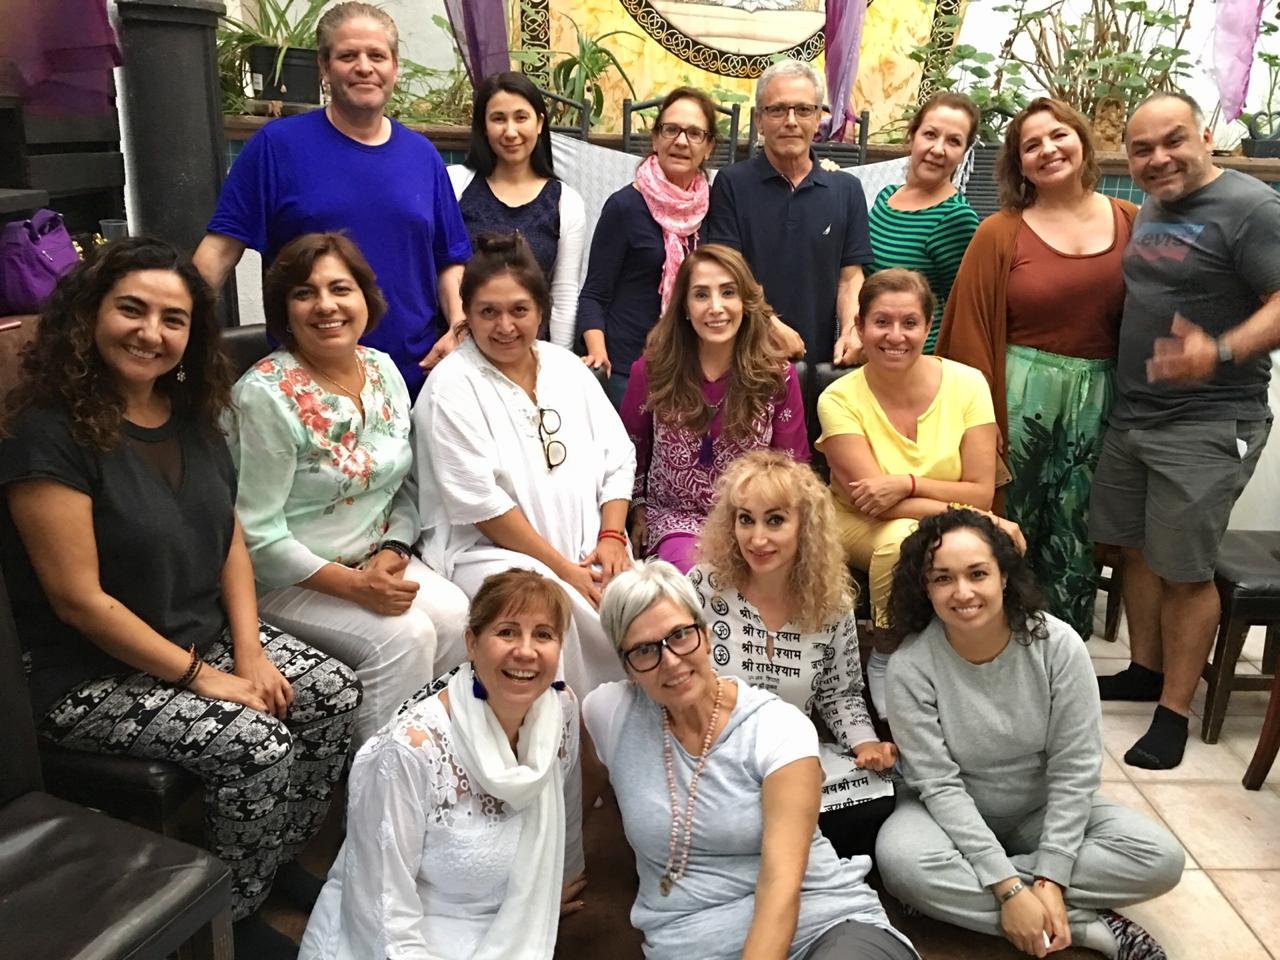 Participants of The Beautiful State in Mexico radiate love and joy. They expressed their gratitude for the power of the wisdom and the processes they received.